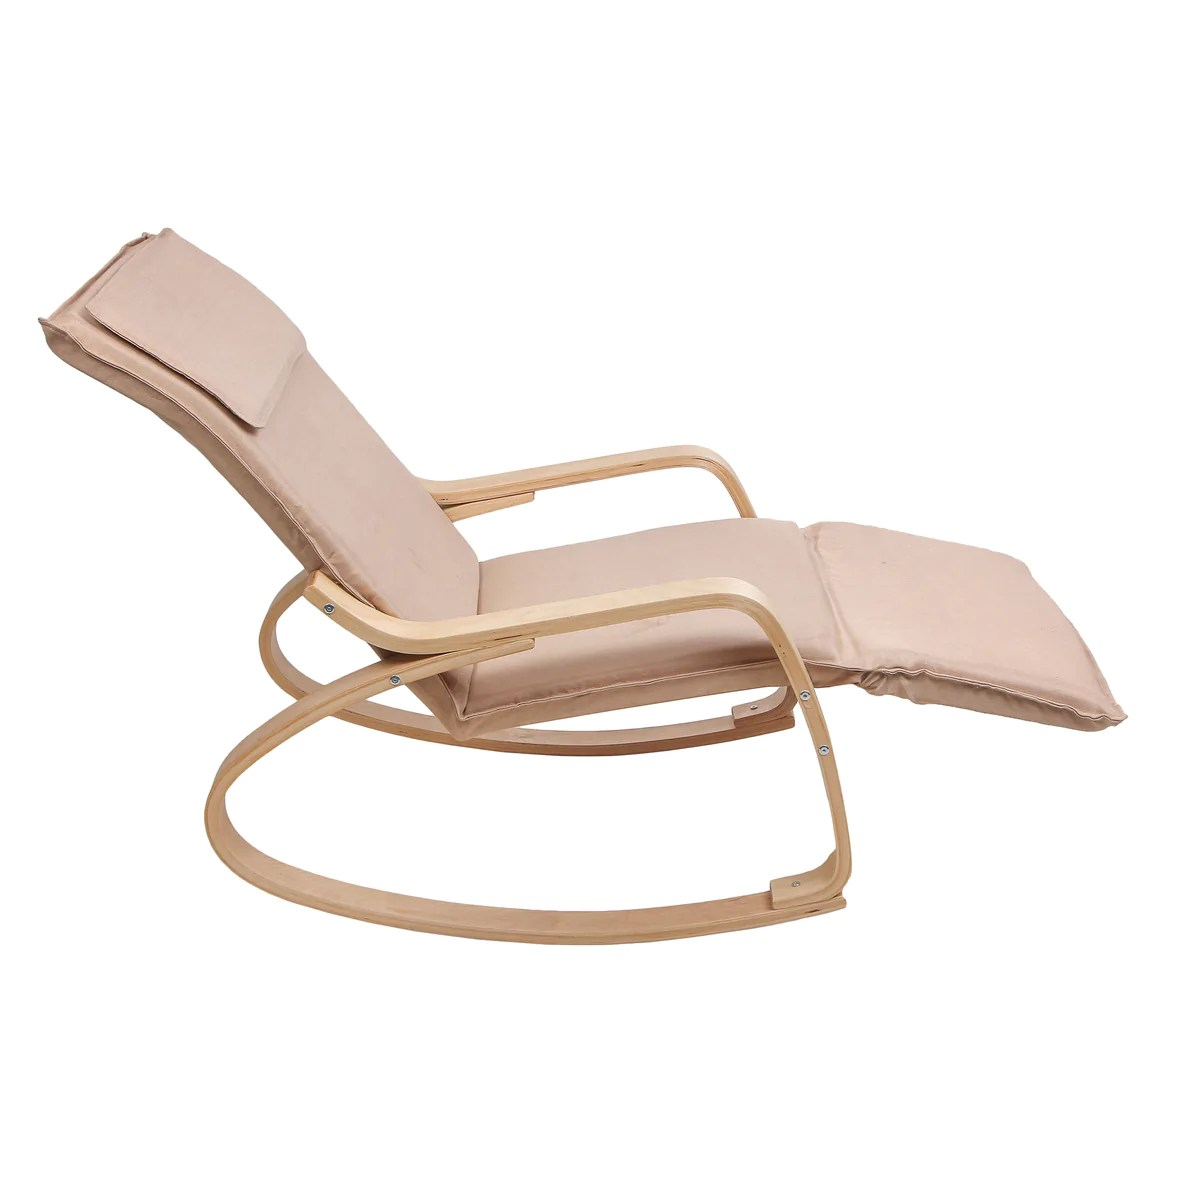 Uberlyfe Relax Rocking Chair With Foot Rest Design With Cushion Cream Colour